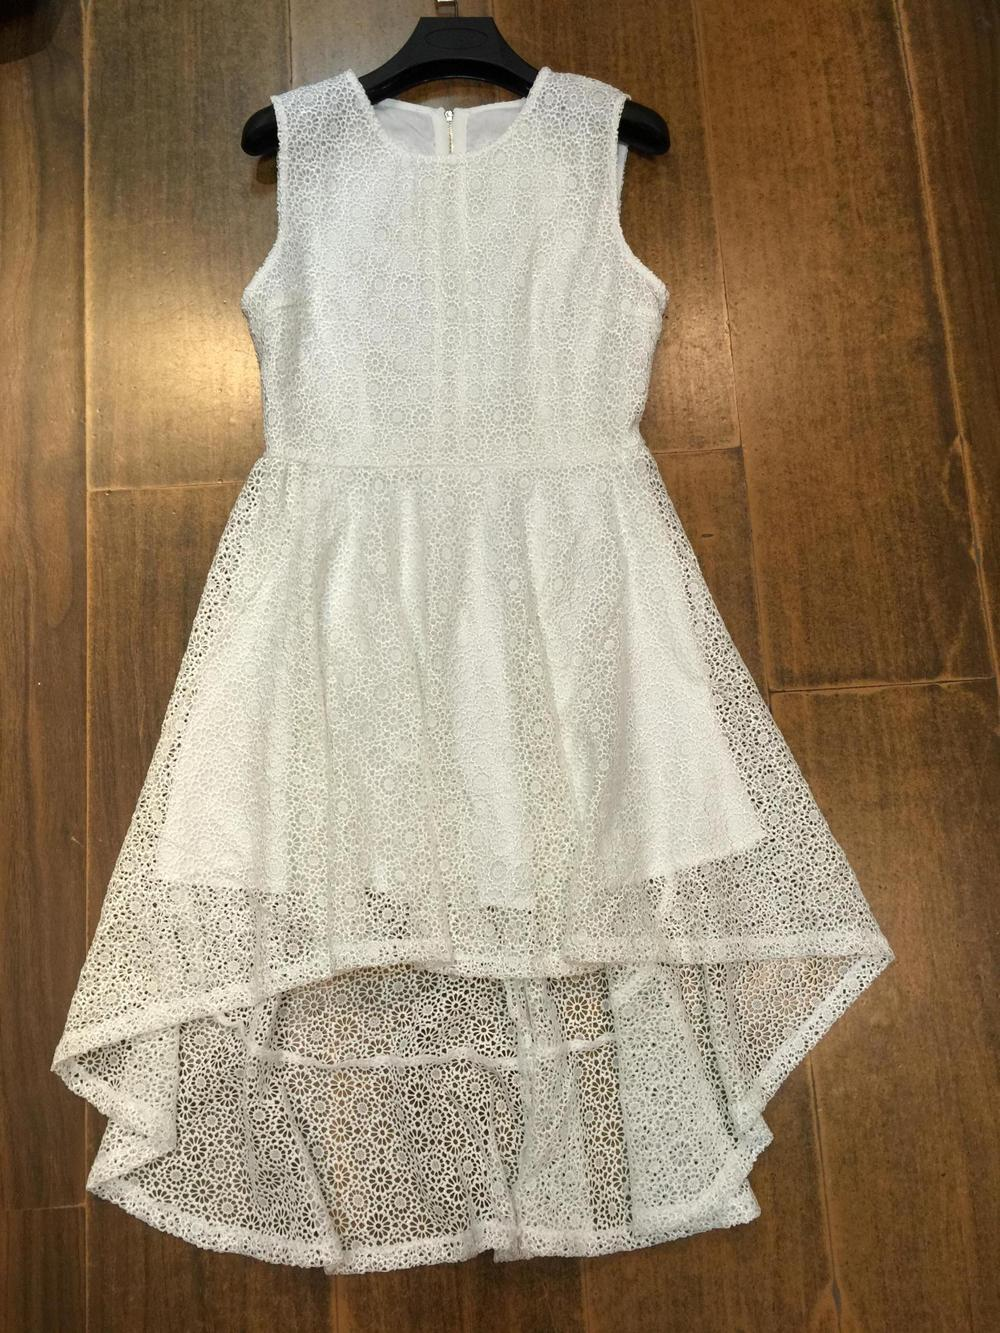 2015SS Women White New soluble Lace Daisy flowers Hollow out irregular dovetail High waist sleeveless dress with lining Back ZipОдежда и ак�е��уары<br><br><br>Aliexpress